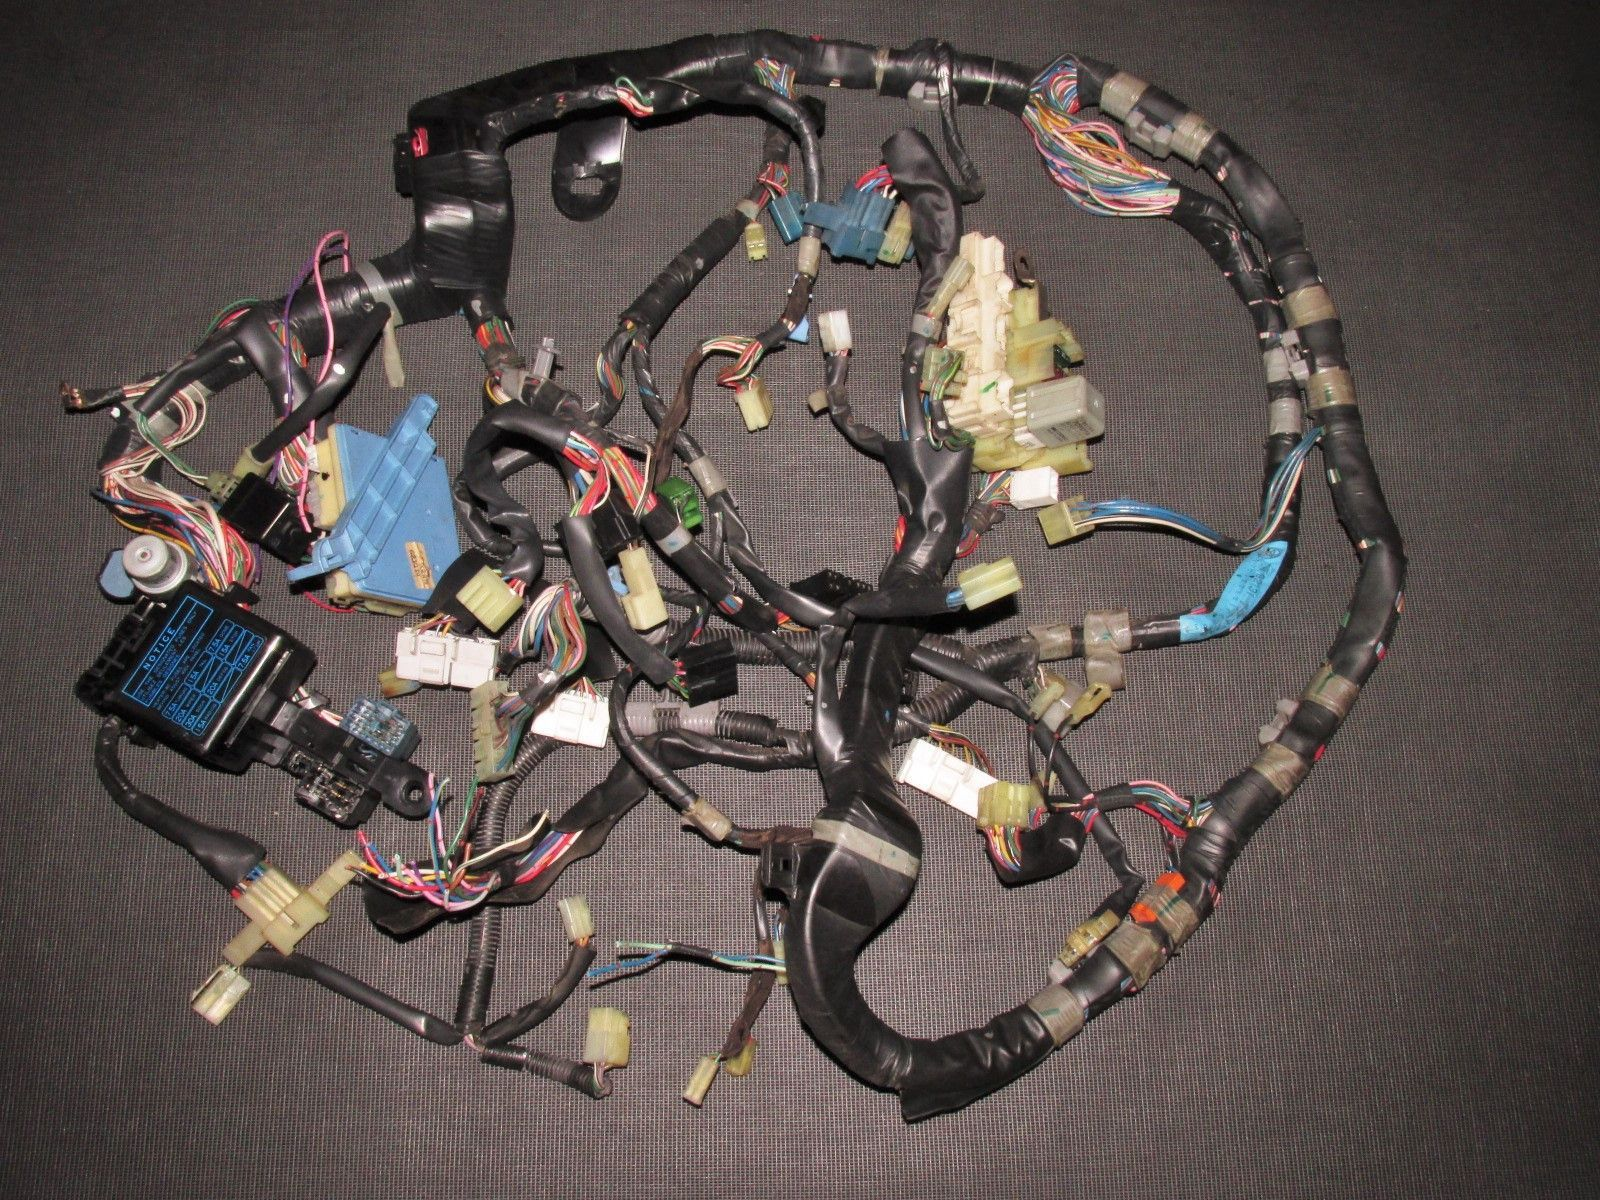 fc8077cba4c075b5aef19536b314b585 87 88 89 toyota mr2 oem dash wiring harness 4age m t toyota 4age wire harness at cos-gaming.co